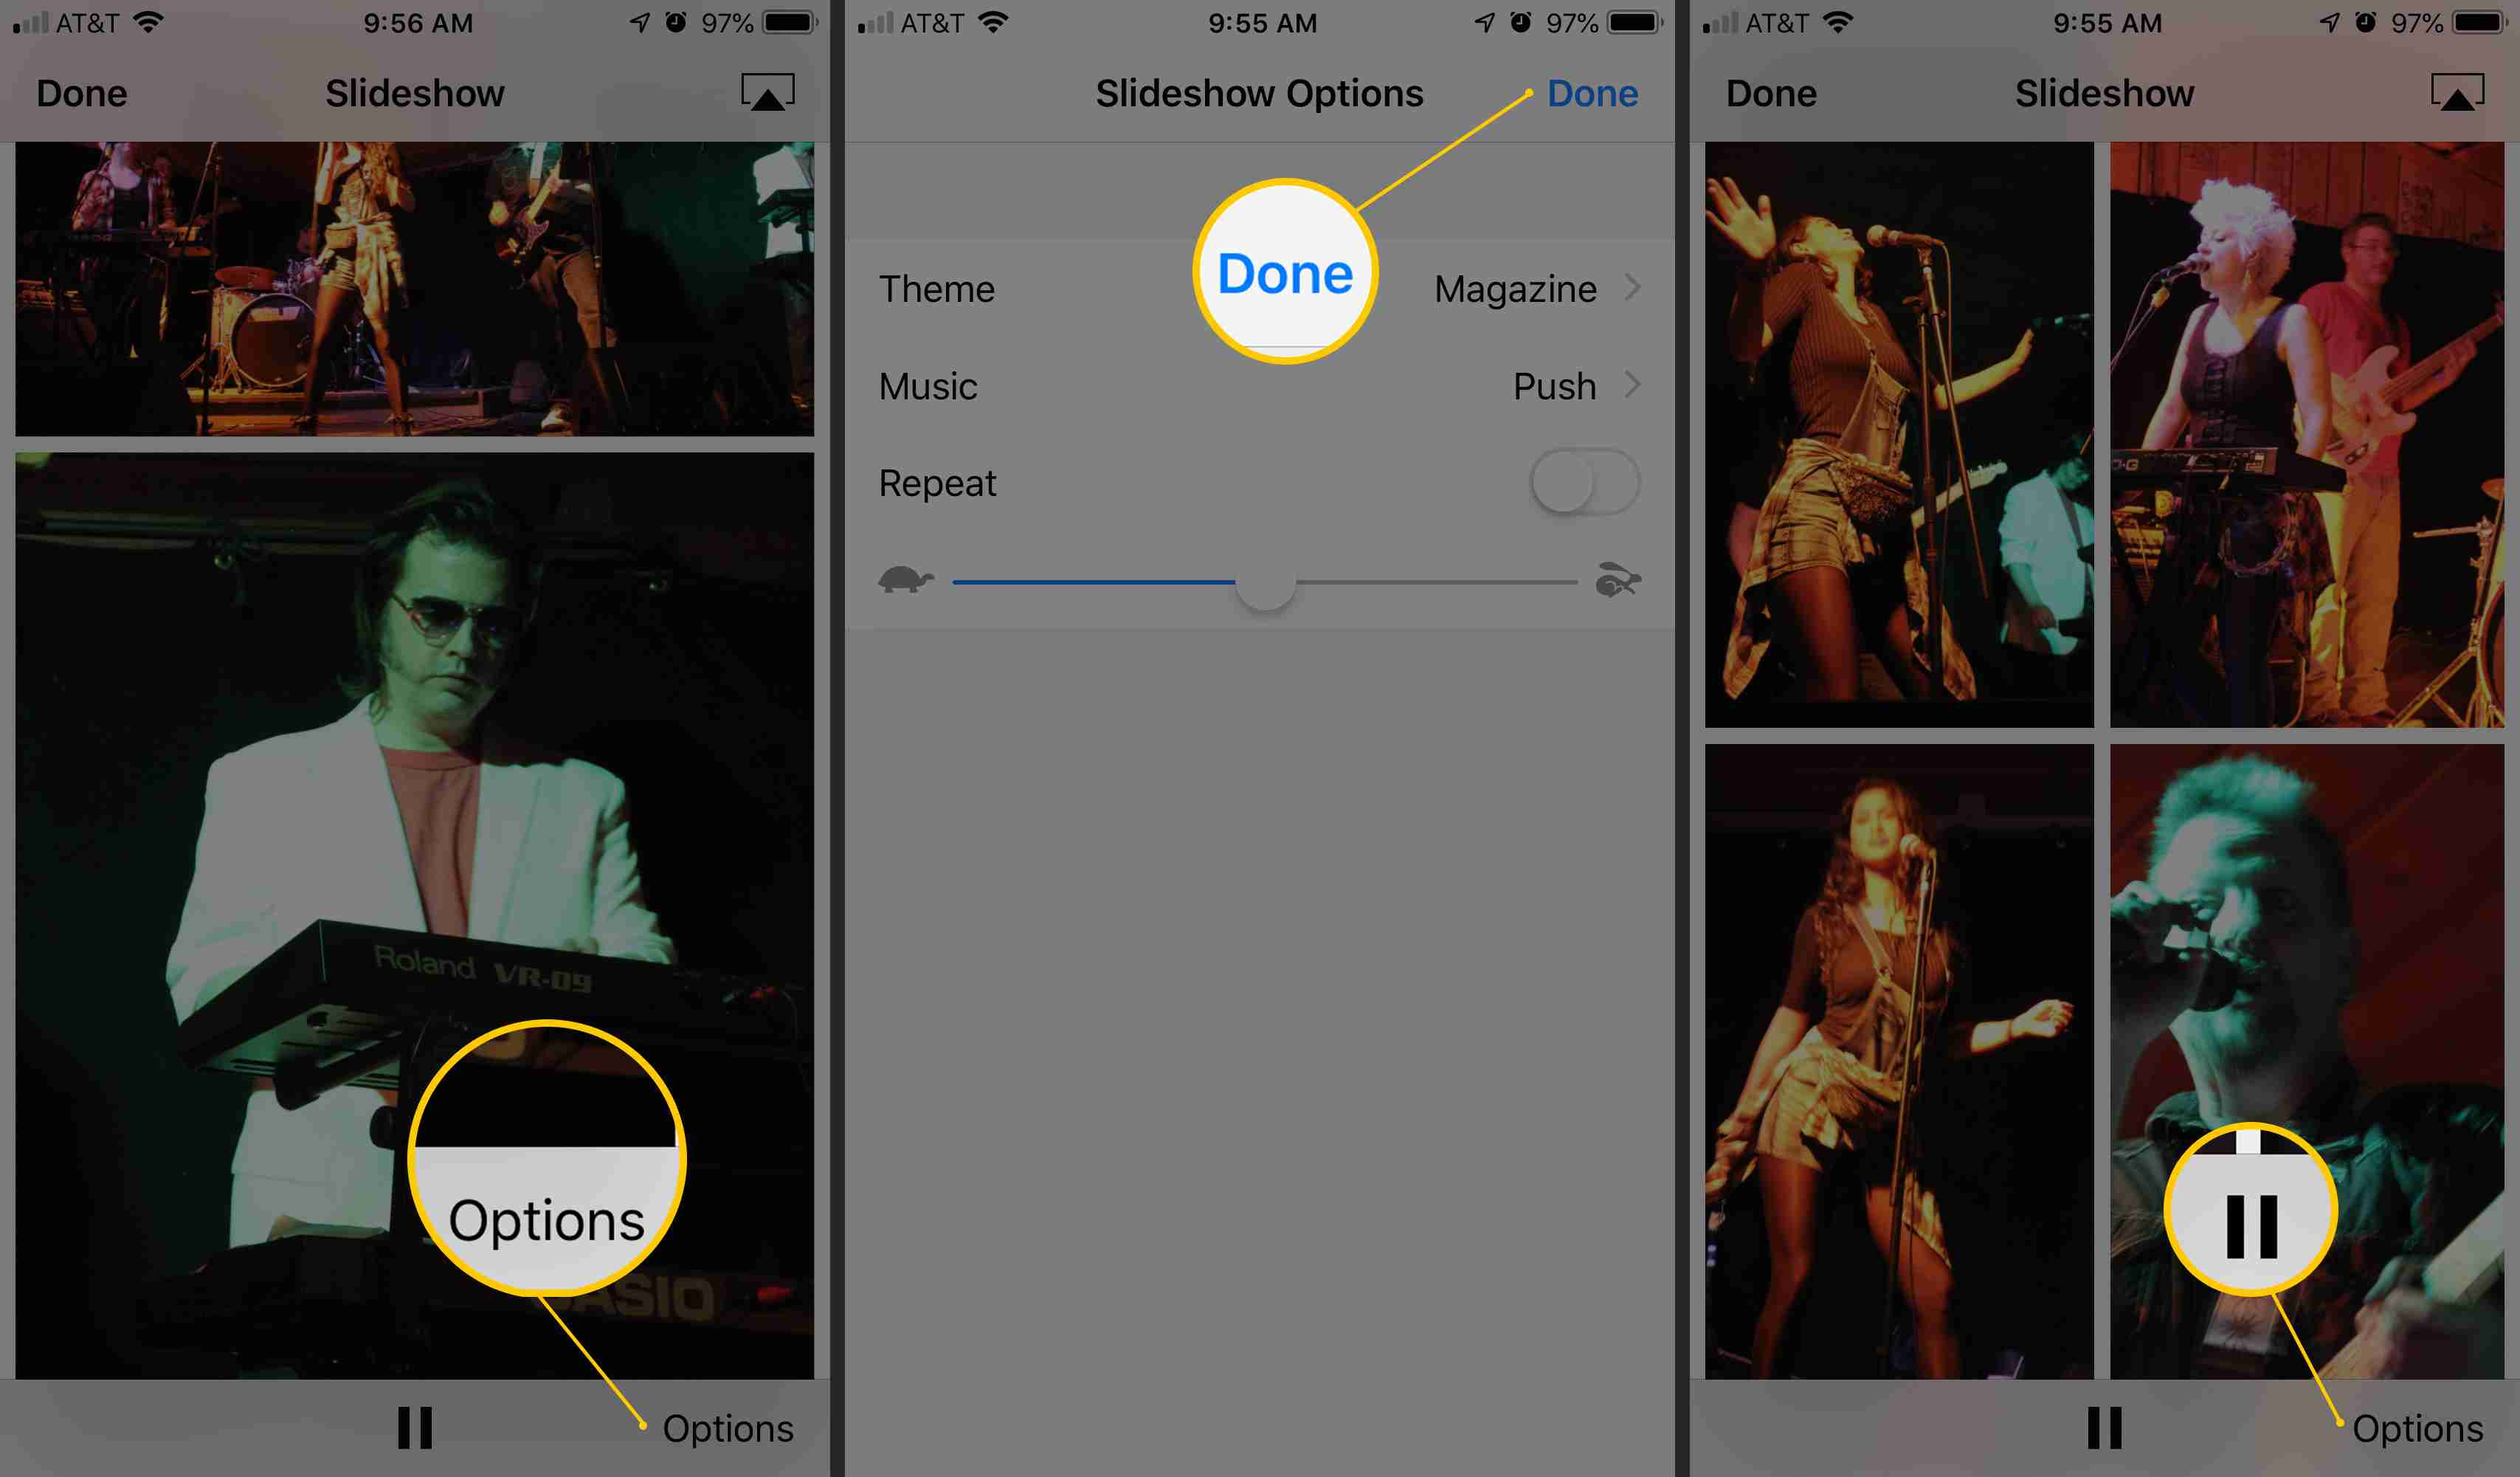 Three iOS screens showing Options, Done, and Pause buttons in Slideshow interface for Photos